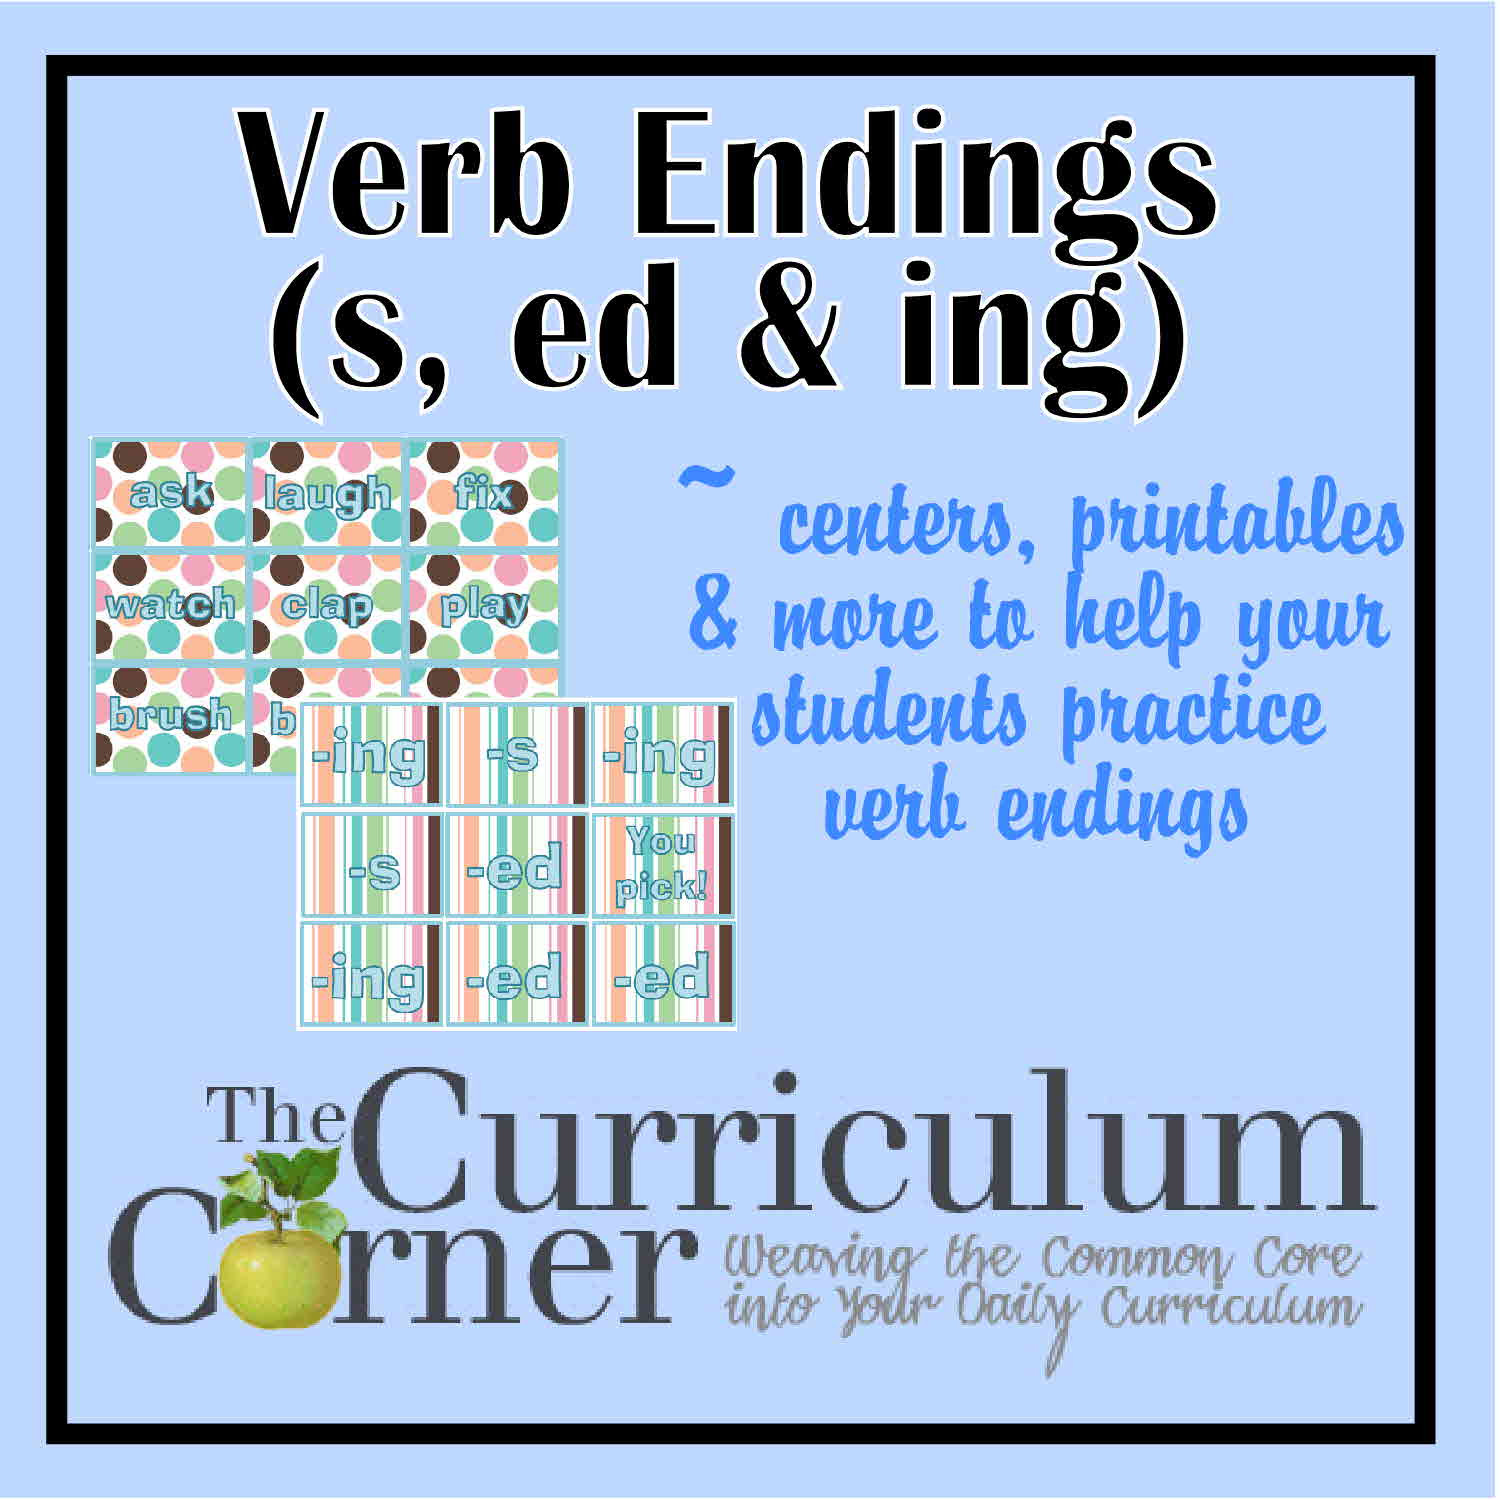 Inflected Endings Worksheets 2nd Grade Verb Endings S Ed Ing the Curriculum Corner 123